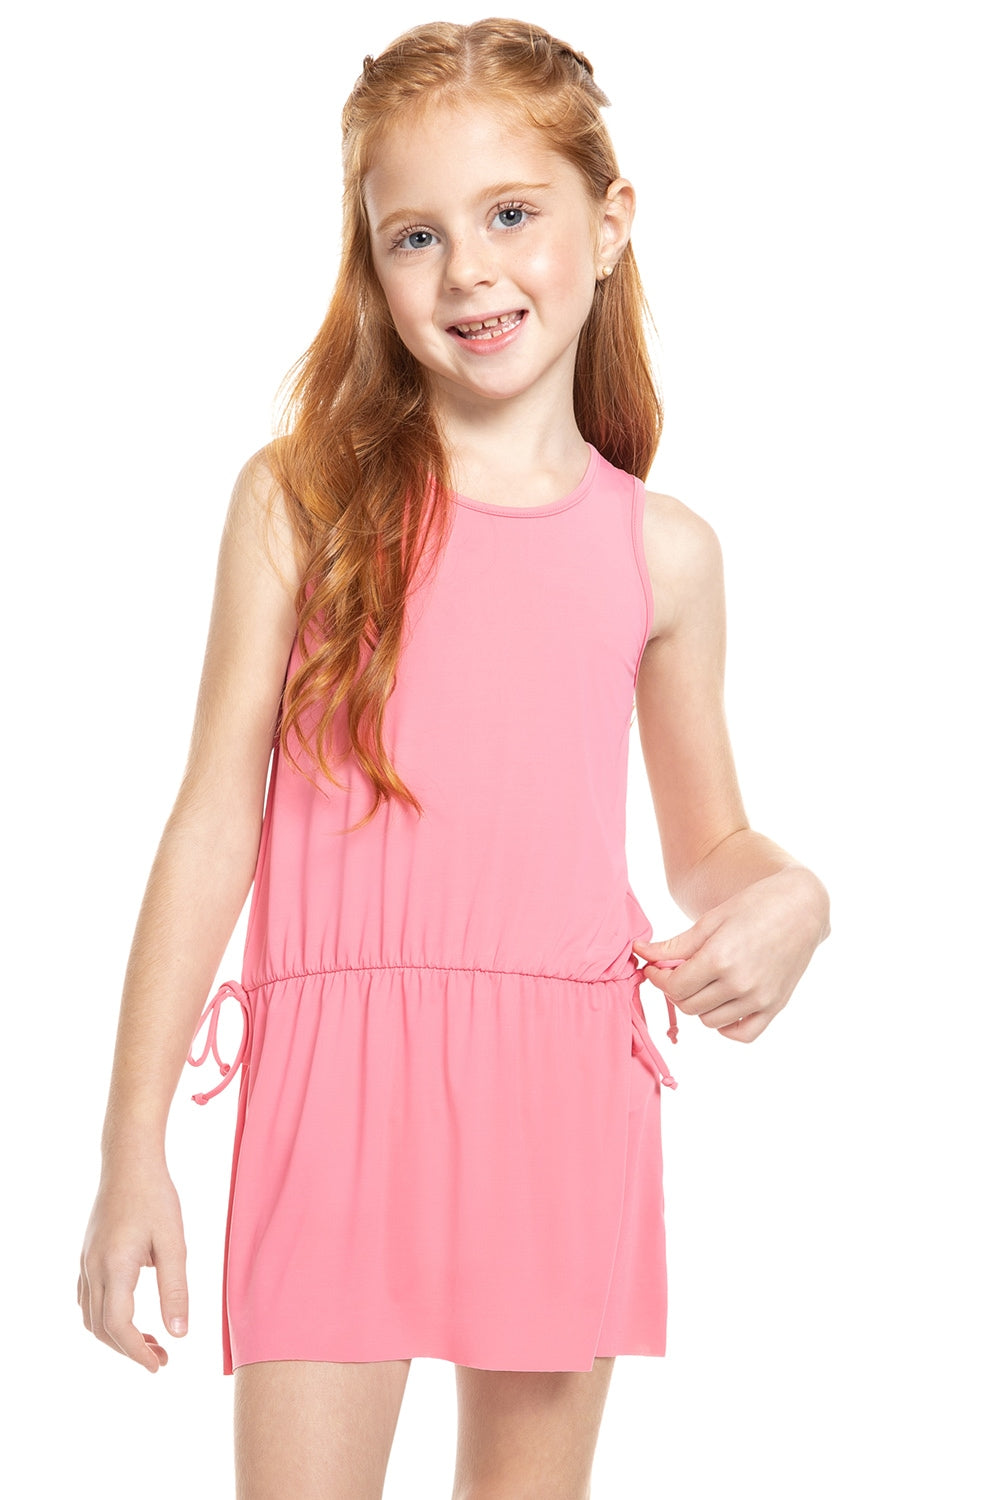 Ocean Dive Kids Dress 1